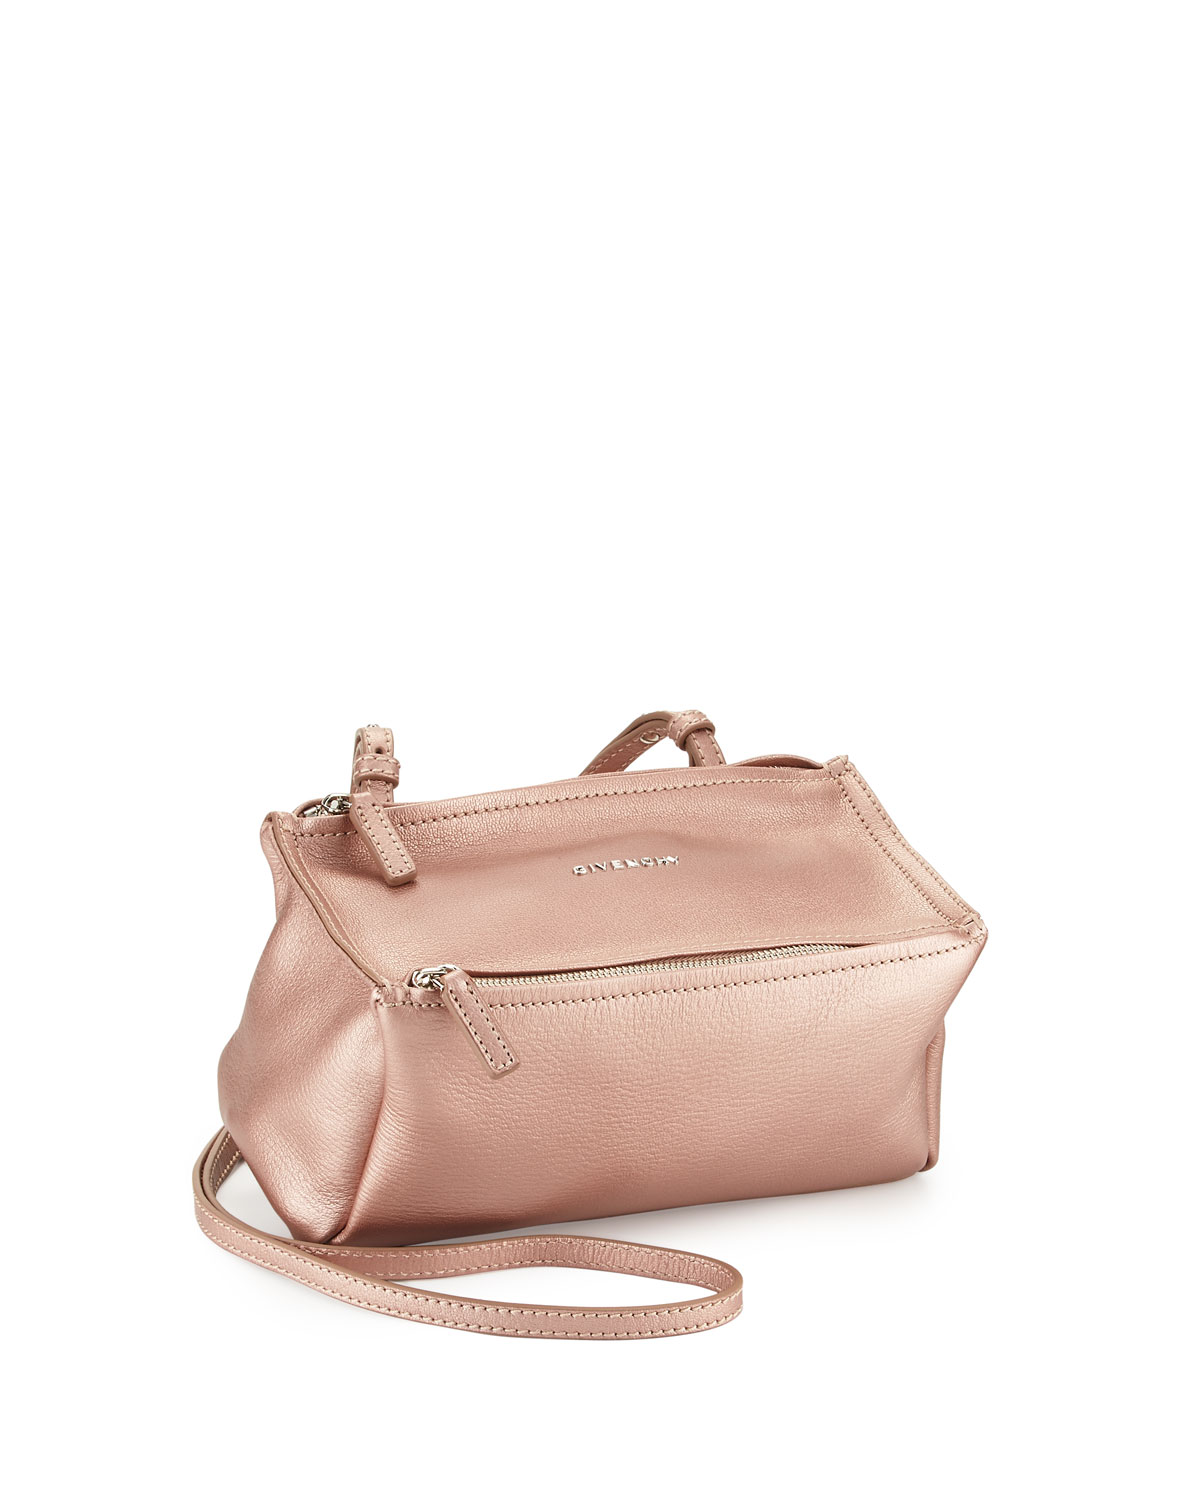 7f2f035b32 Givenchy Pandora Mini Metallic Crossbody Bag, Champagne | Neiman Marcus